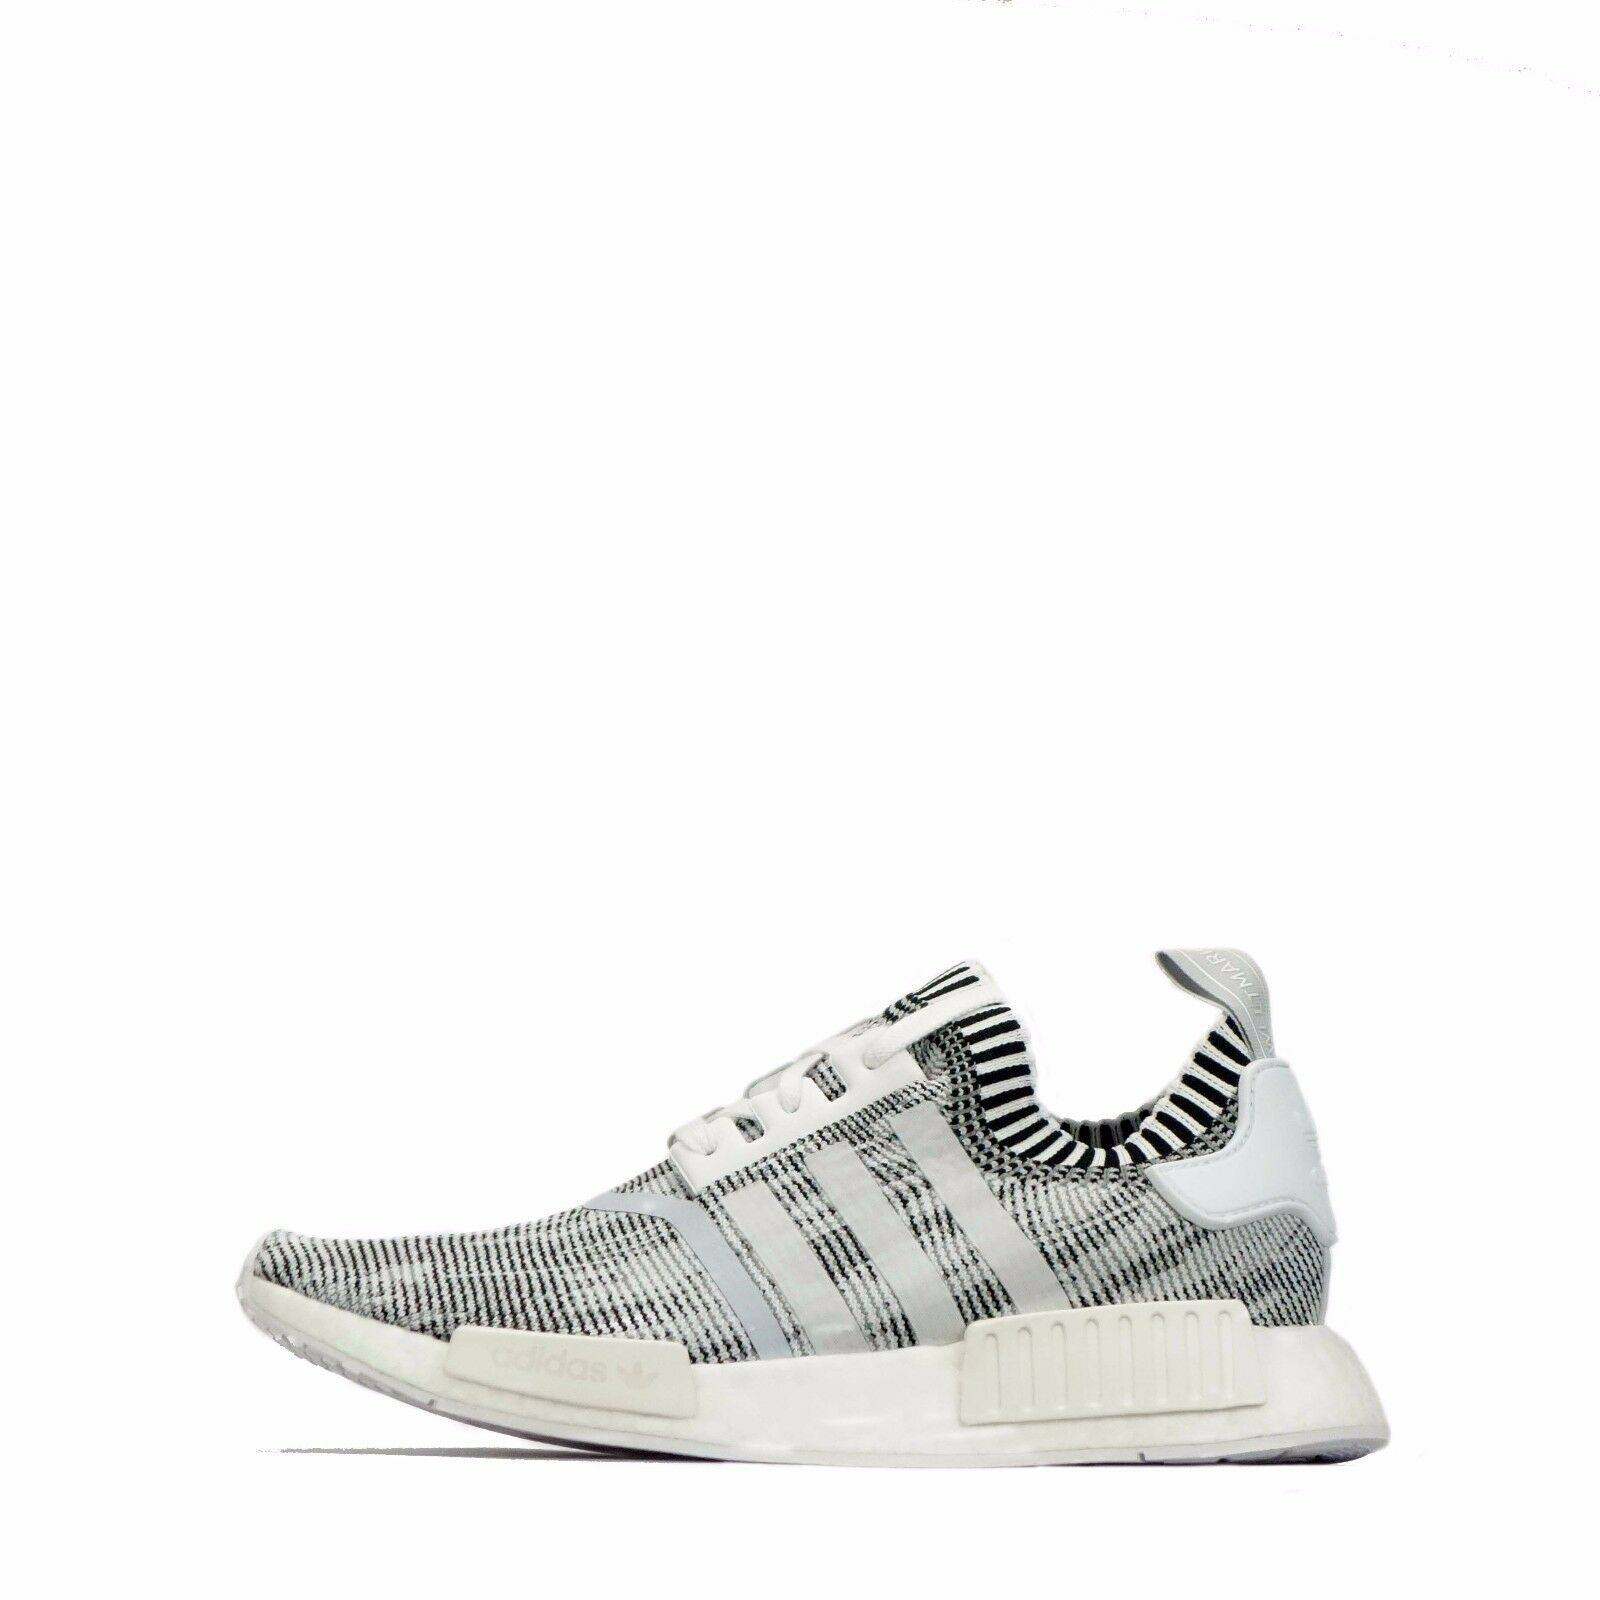 adidas Originals NMD_R1 Prime Knit Men's trainers Shoes White/Black